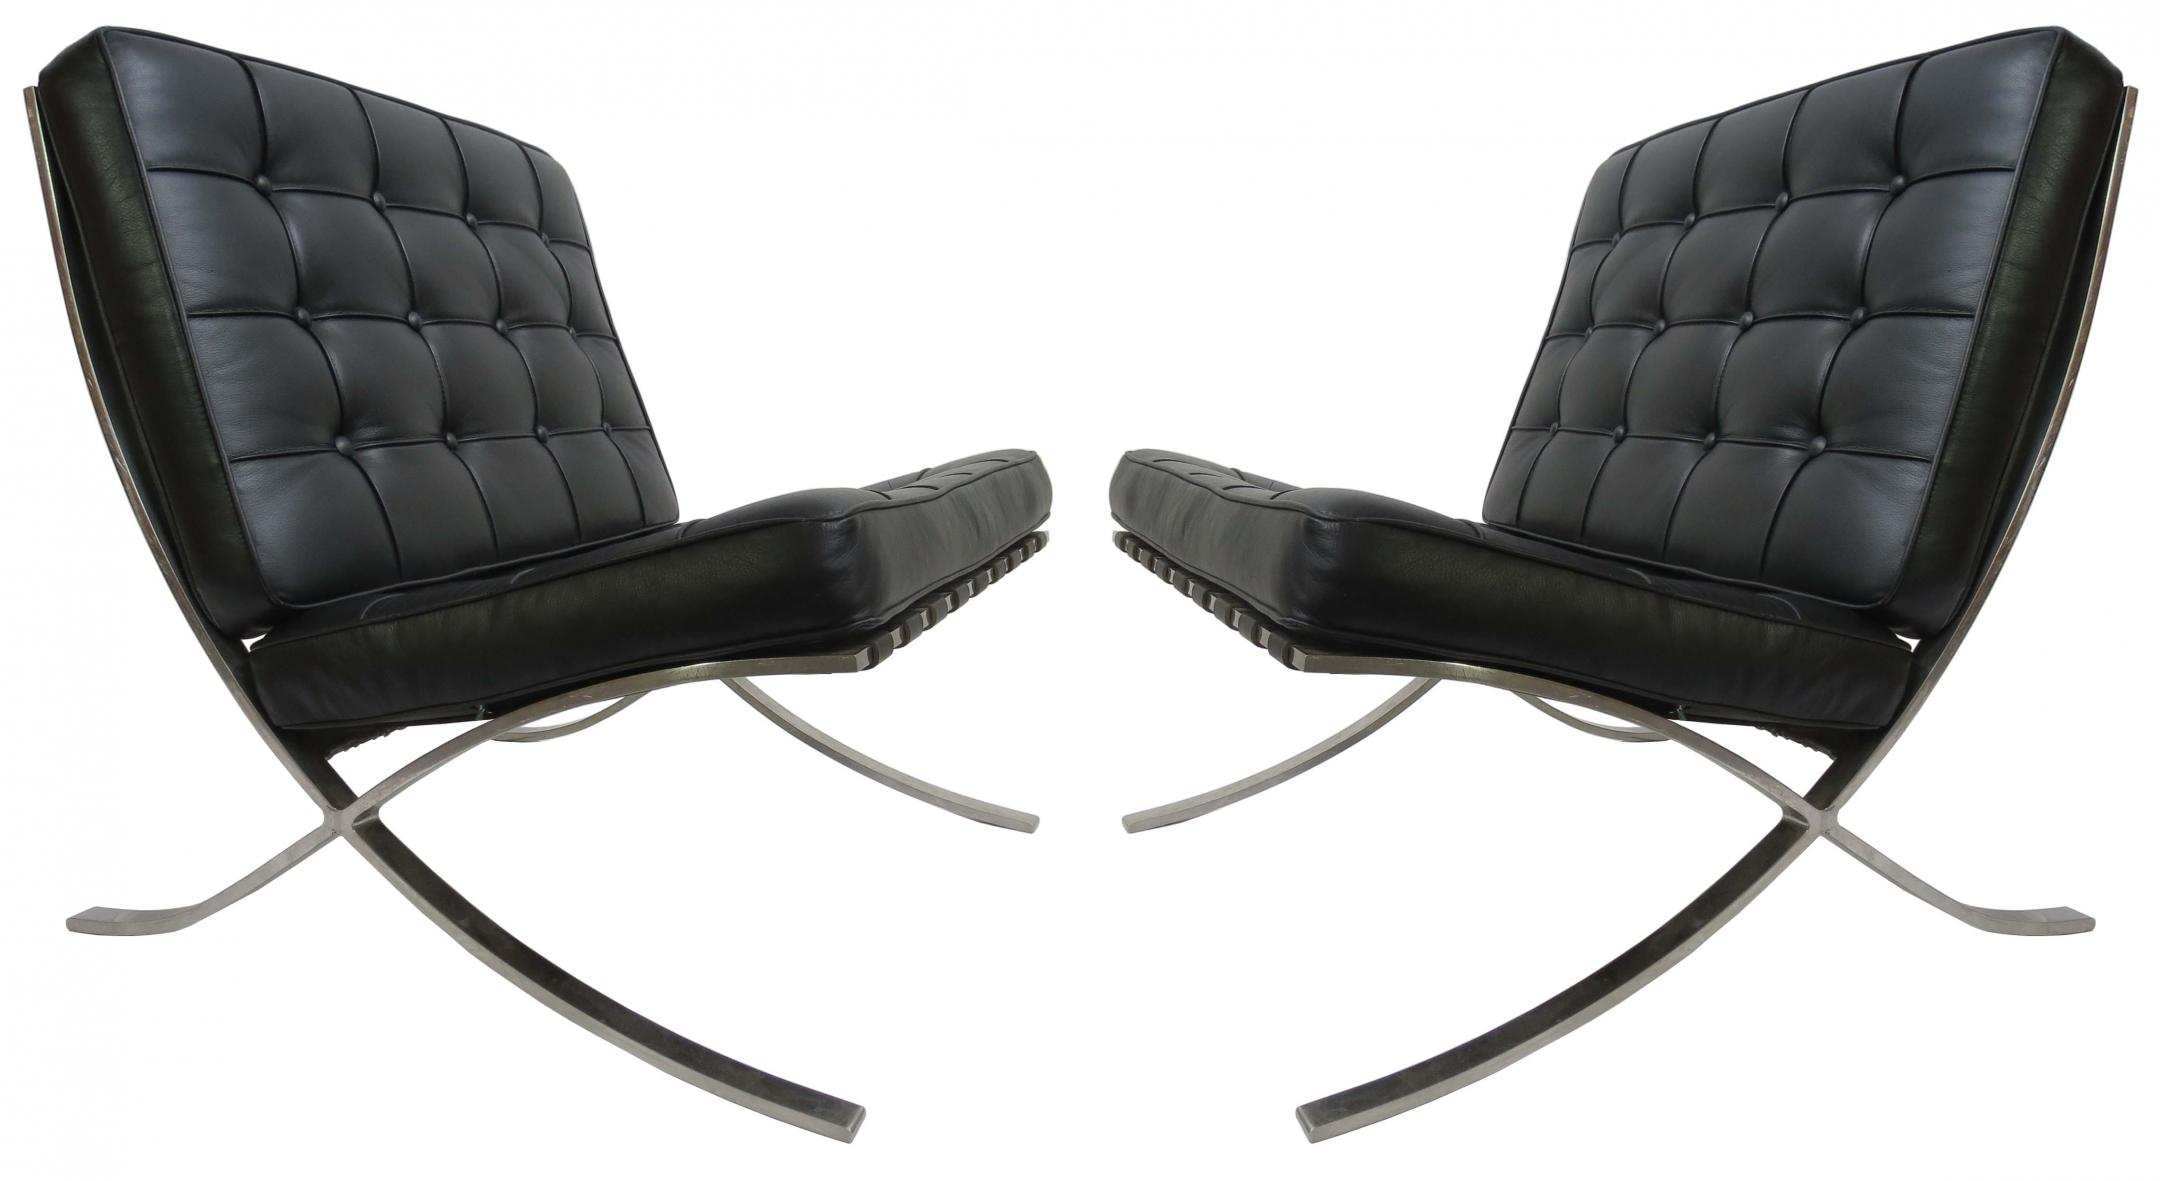 Barcelona Chairs For Sale Three Mies Van Der Rohe Barcelona Chairs Modernism